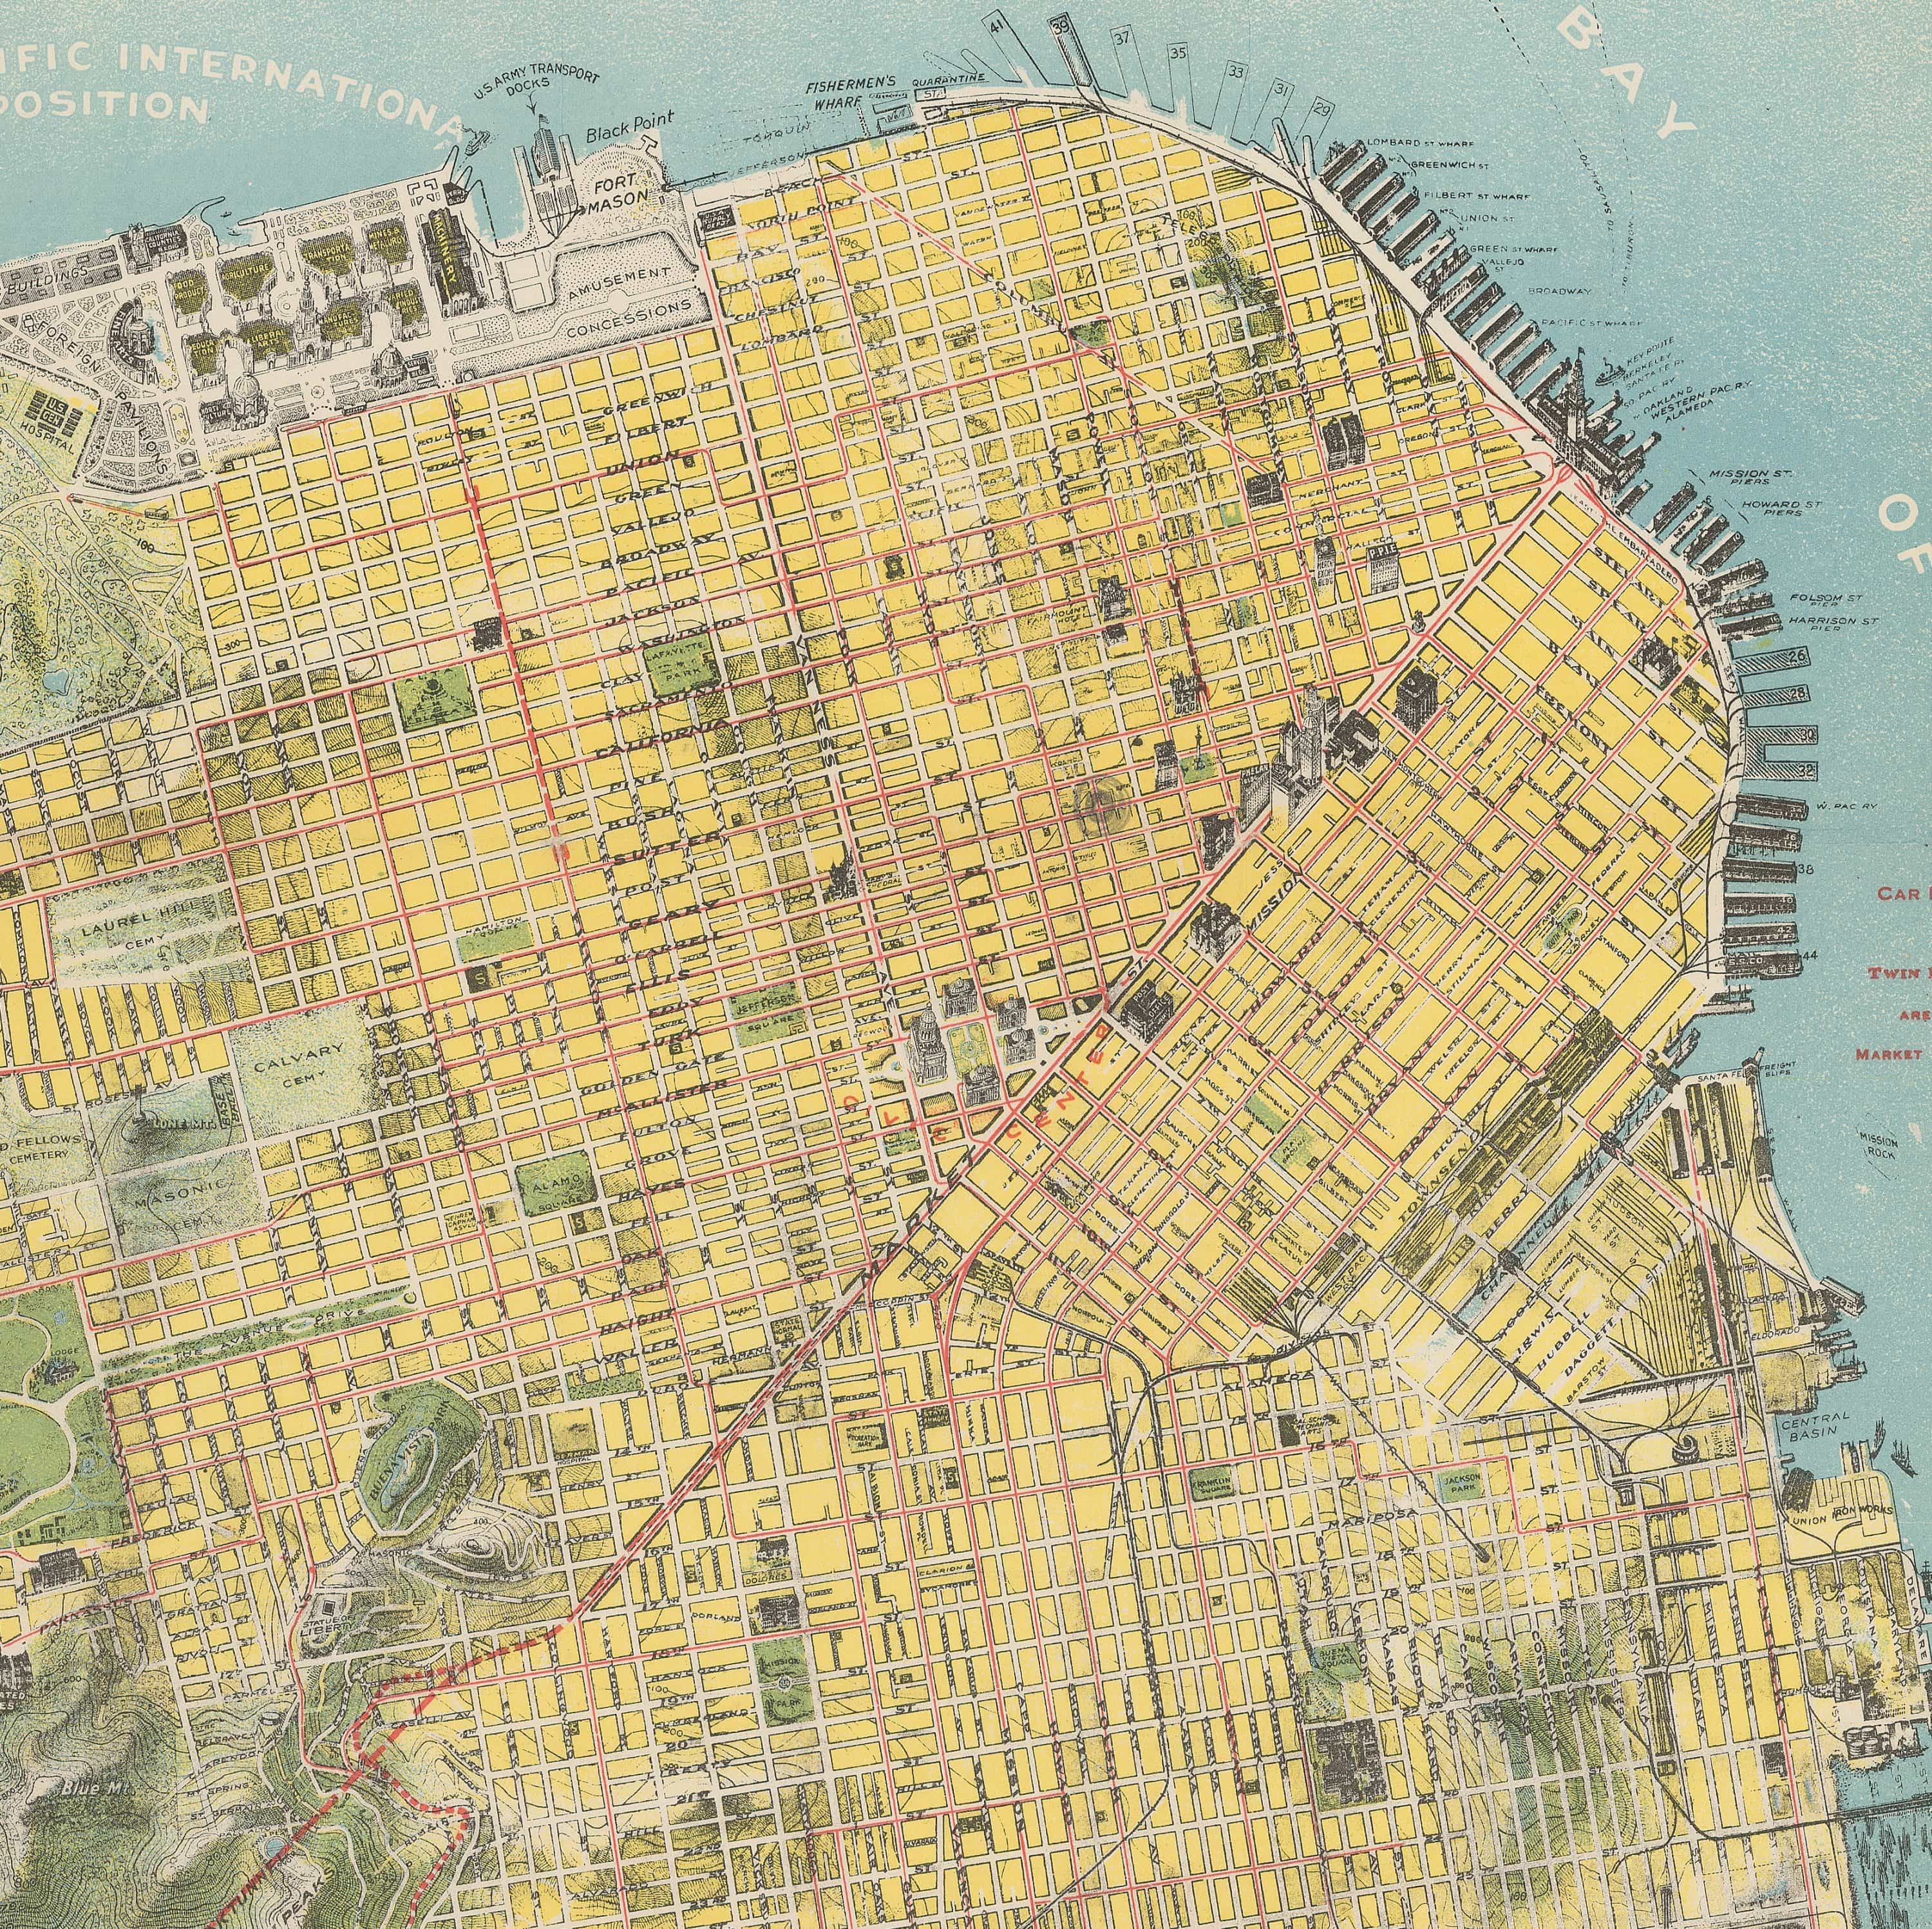 Spectacular Chevalier map of San Francisco for the 1915 Exposition